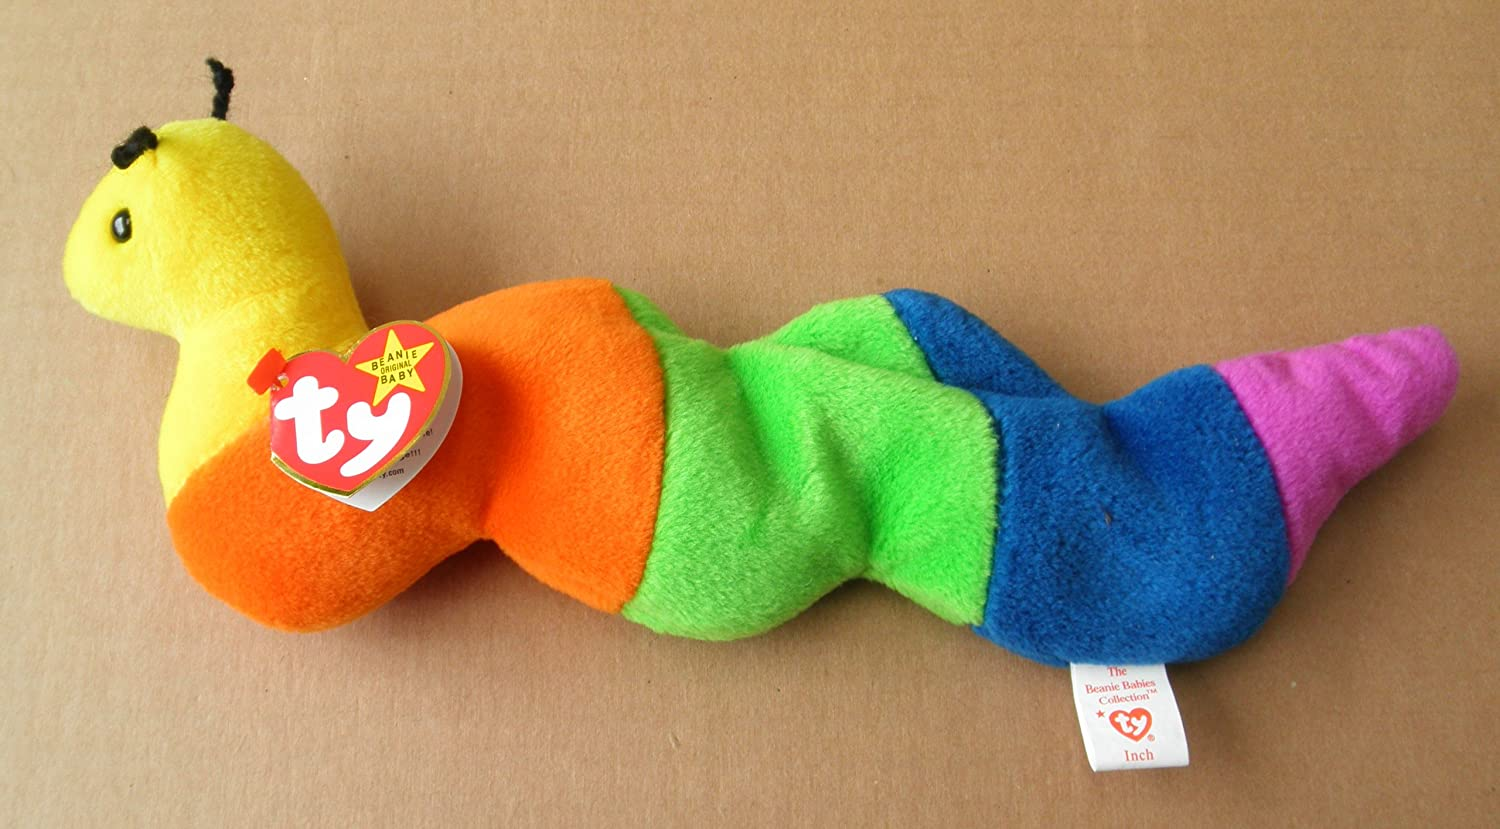 Amazon.com: TY Beanie Babies Inch the Worm Stuffed Animal Plush Toy - 11  inches long - Multi-color - Style 4044: Office Products